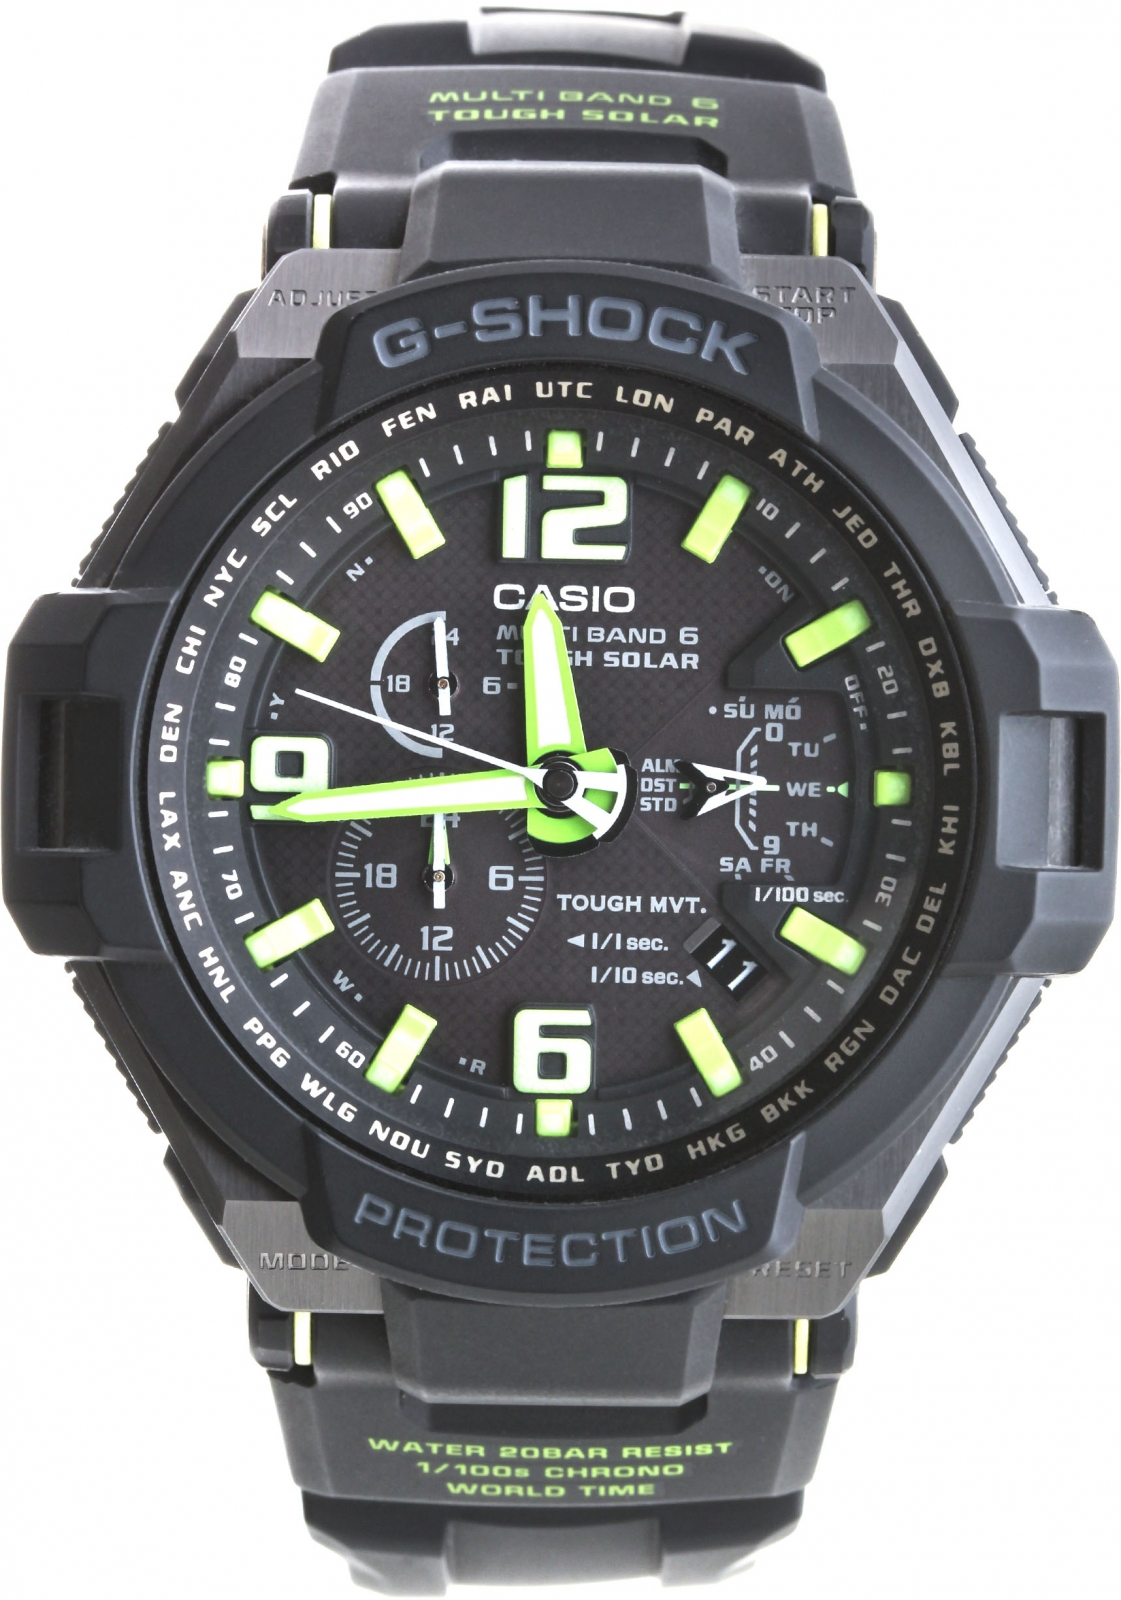 Casio G-shock GW-4000-1A3 yongnuo yn 622c yn 622 wireless ettl hss 1 8000s flash trigger 2 transceivers for canon 1100d 1000d 650d 600d 550d 7d 5dii 40d